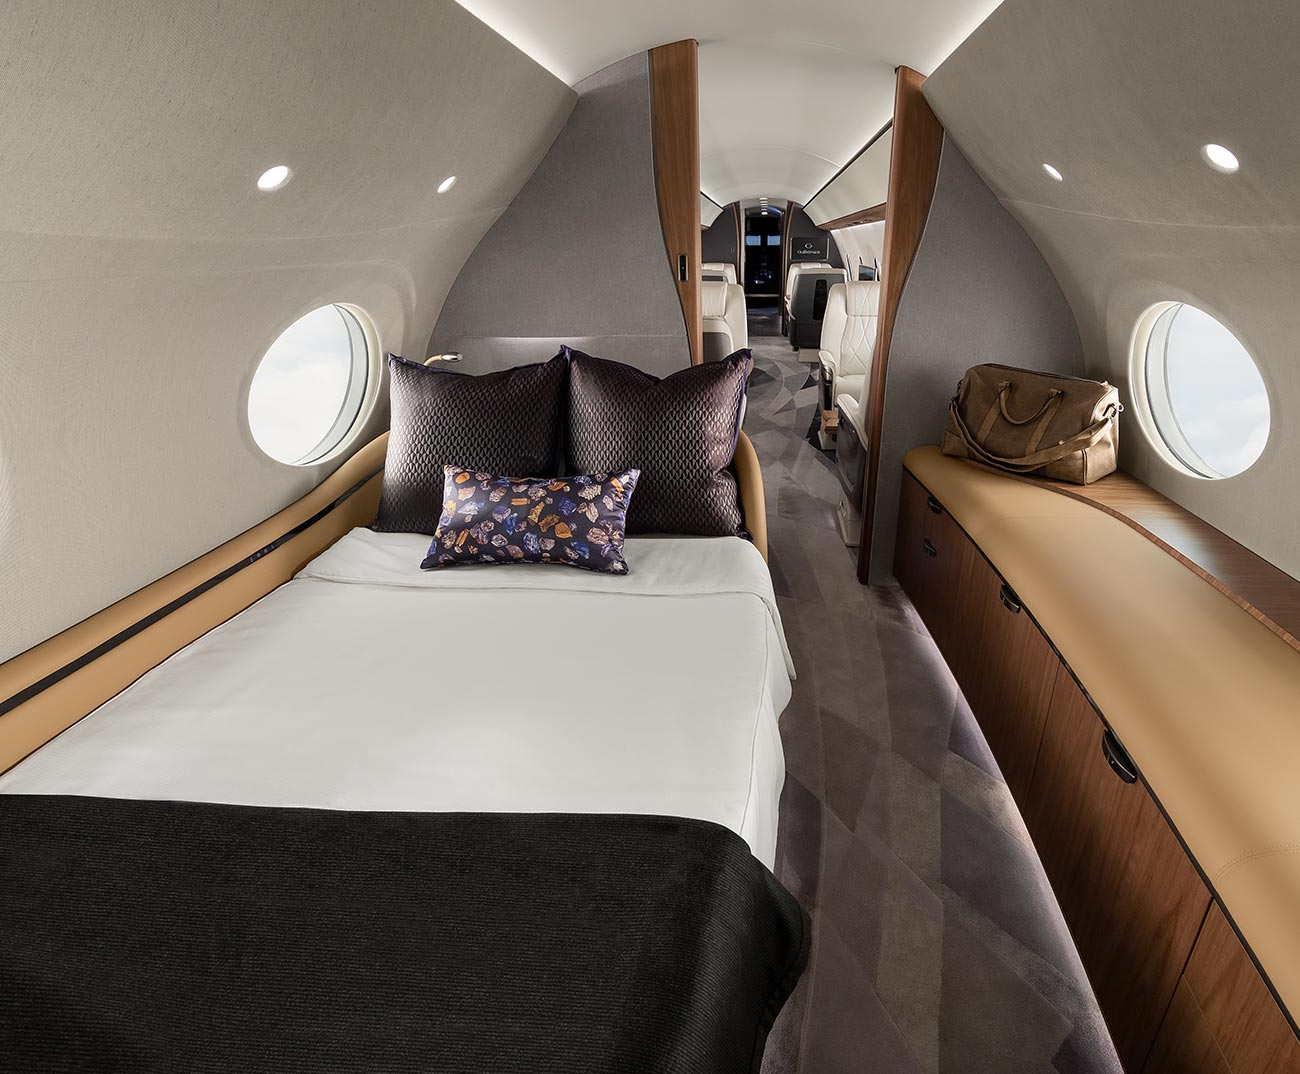 View of bed and dresser in luxury aircraft